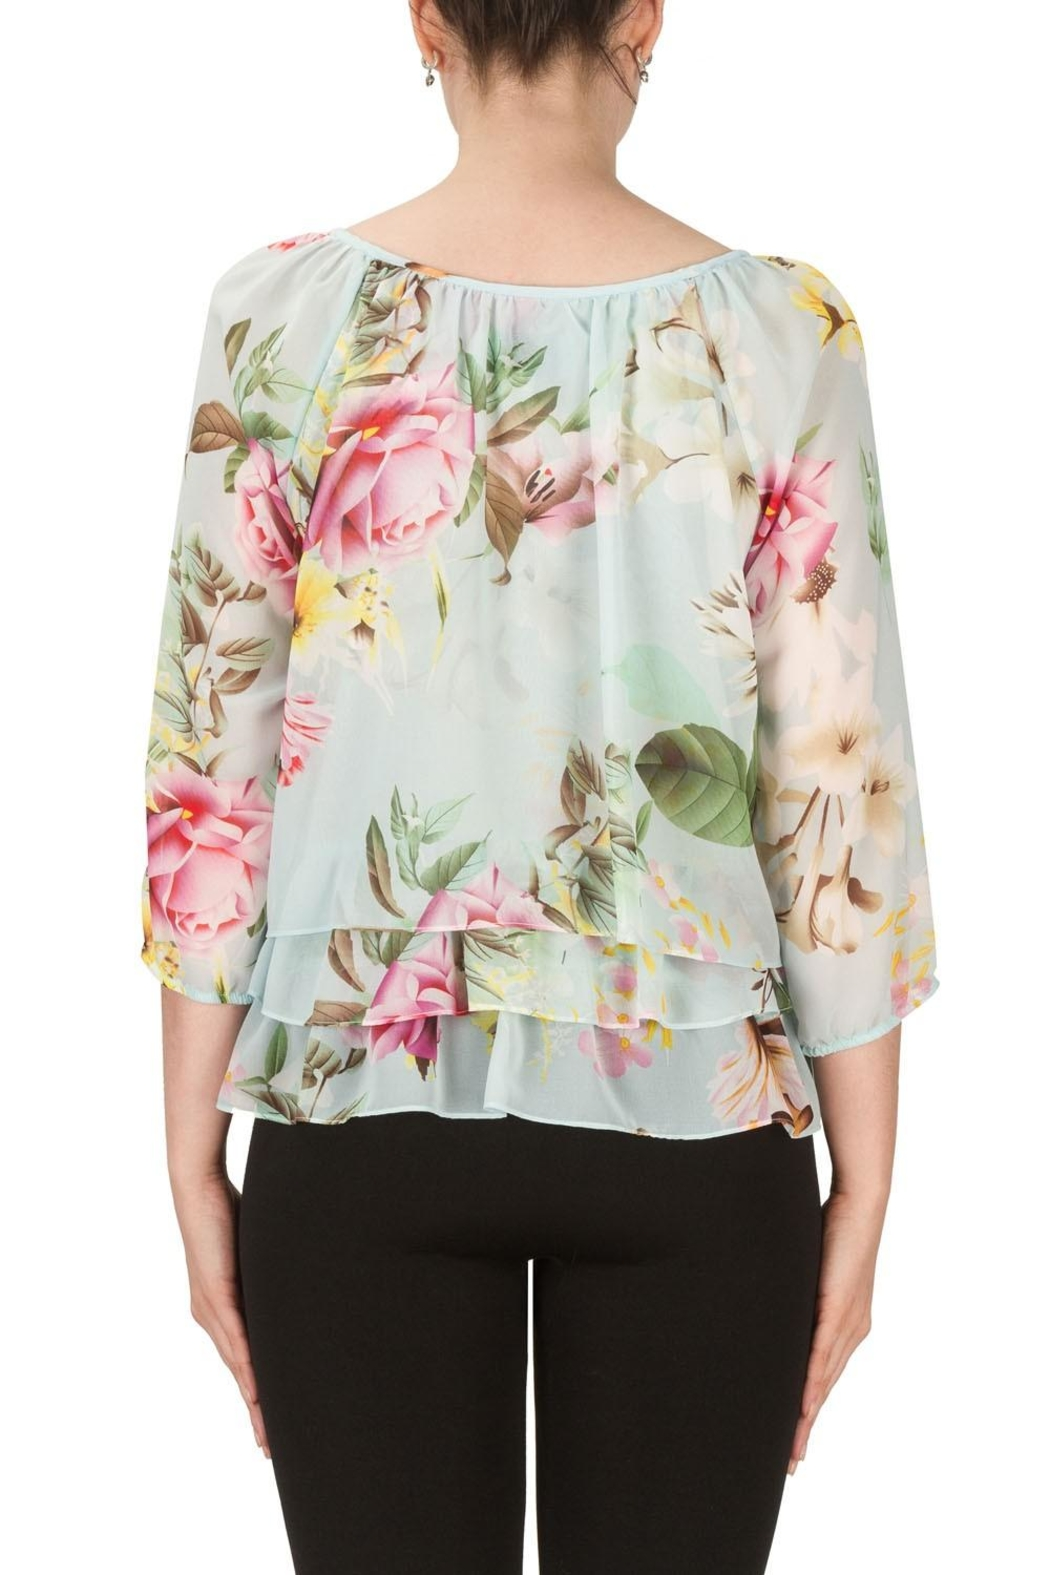 Joseph Ribkoff Floral Top - Side Cropped Image